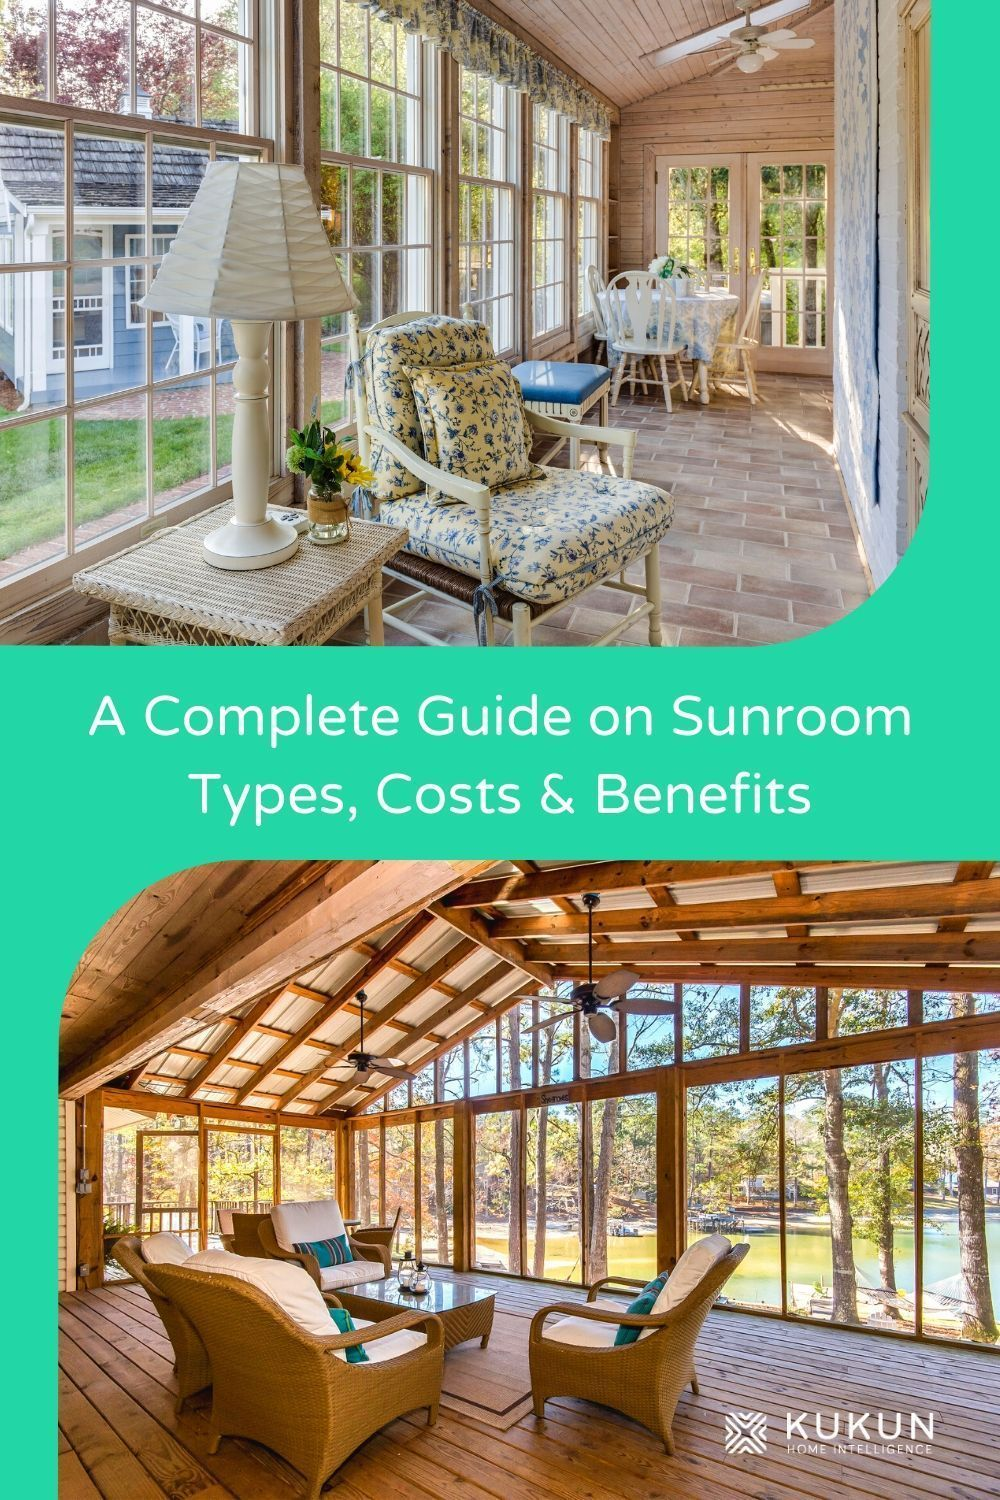 Thinking about adding a sunroom to your home? Let's explore the various types, benefits, and costs of sunroom addition. #HomeAddition #SunroomIdeas #HomeDesignIdeas